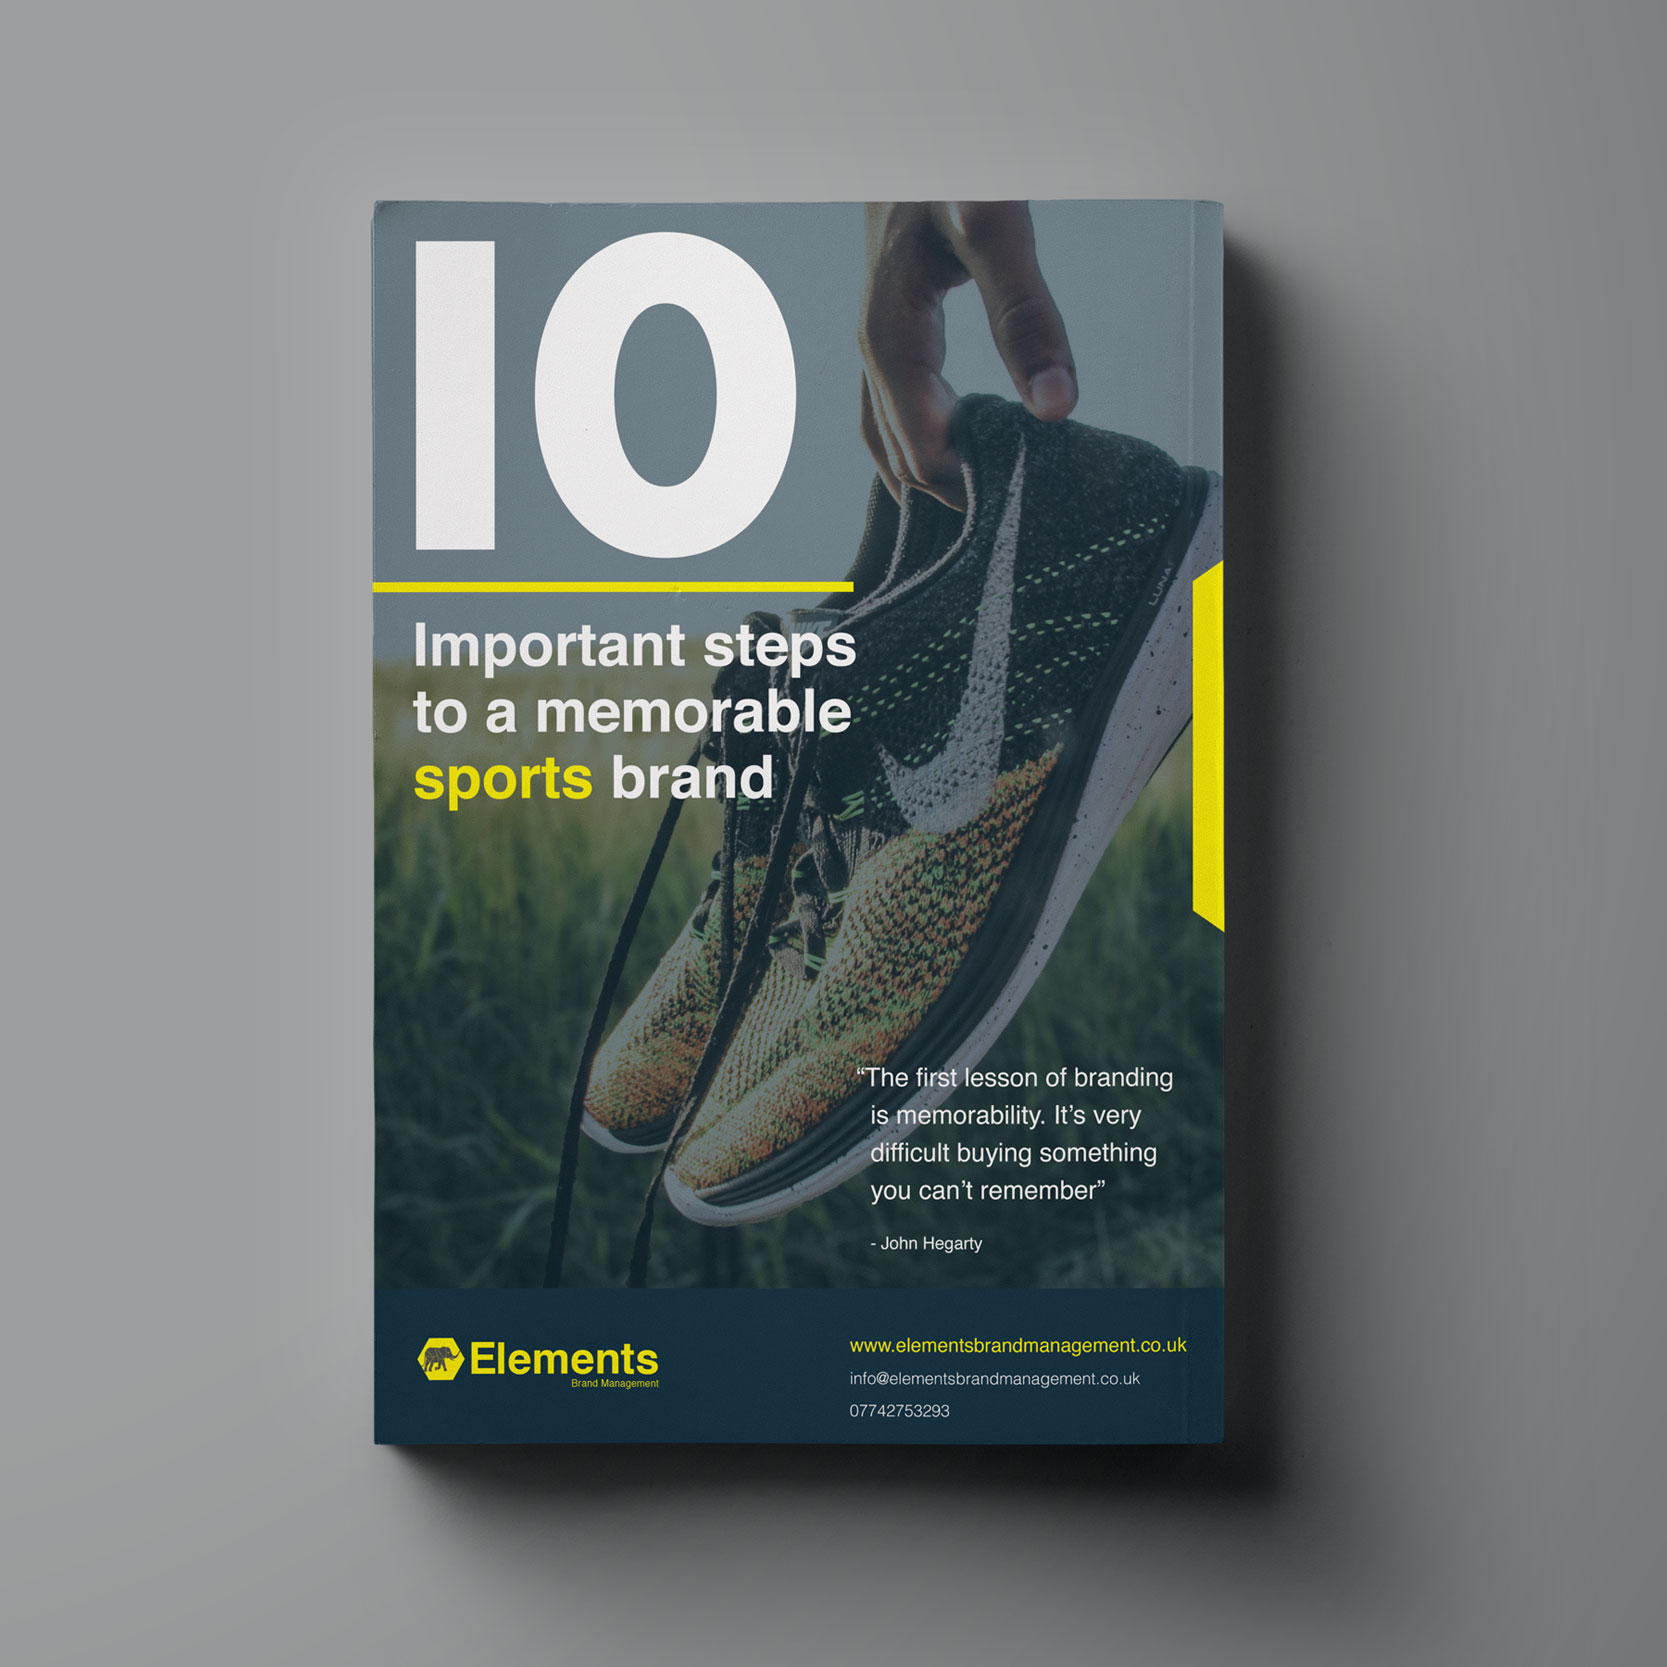 10 Important steps to an engaging and memorable sports brand